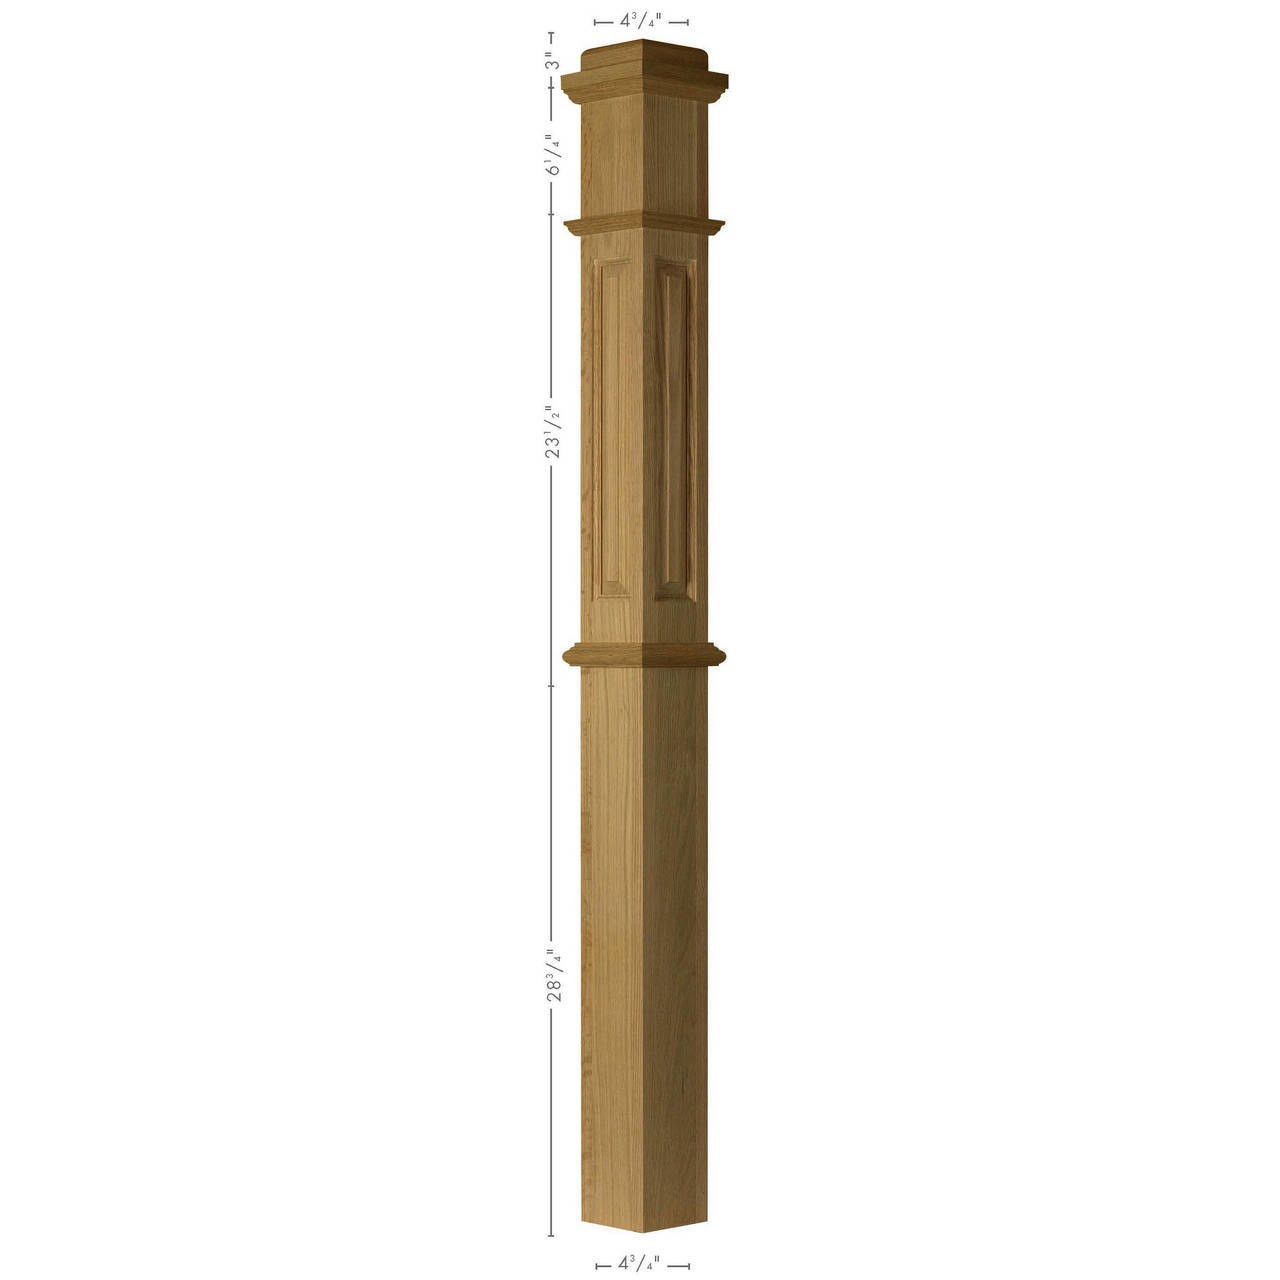 ARP-4375 Primed with Special Species Trim Paneled Box Newel